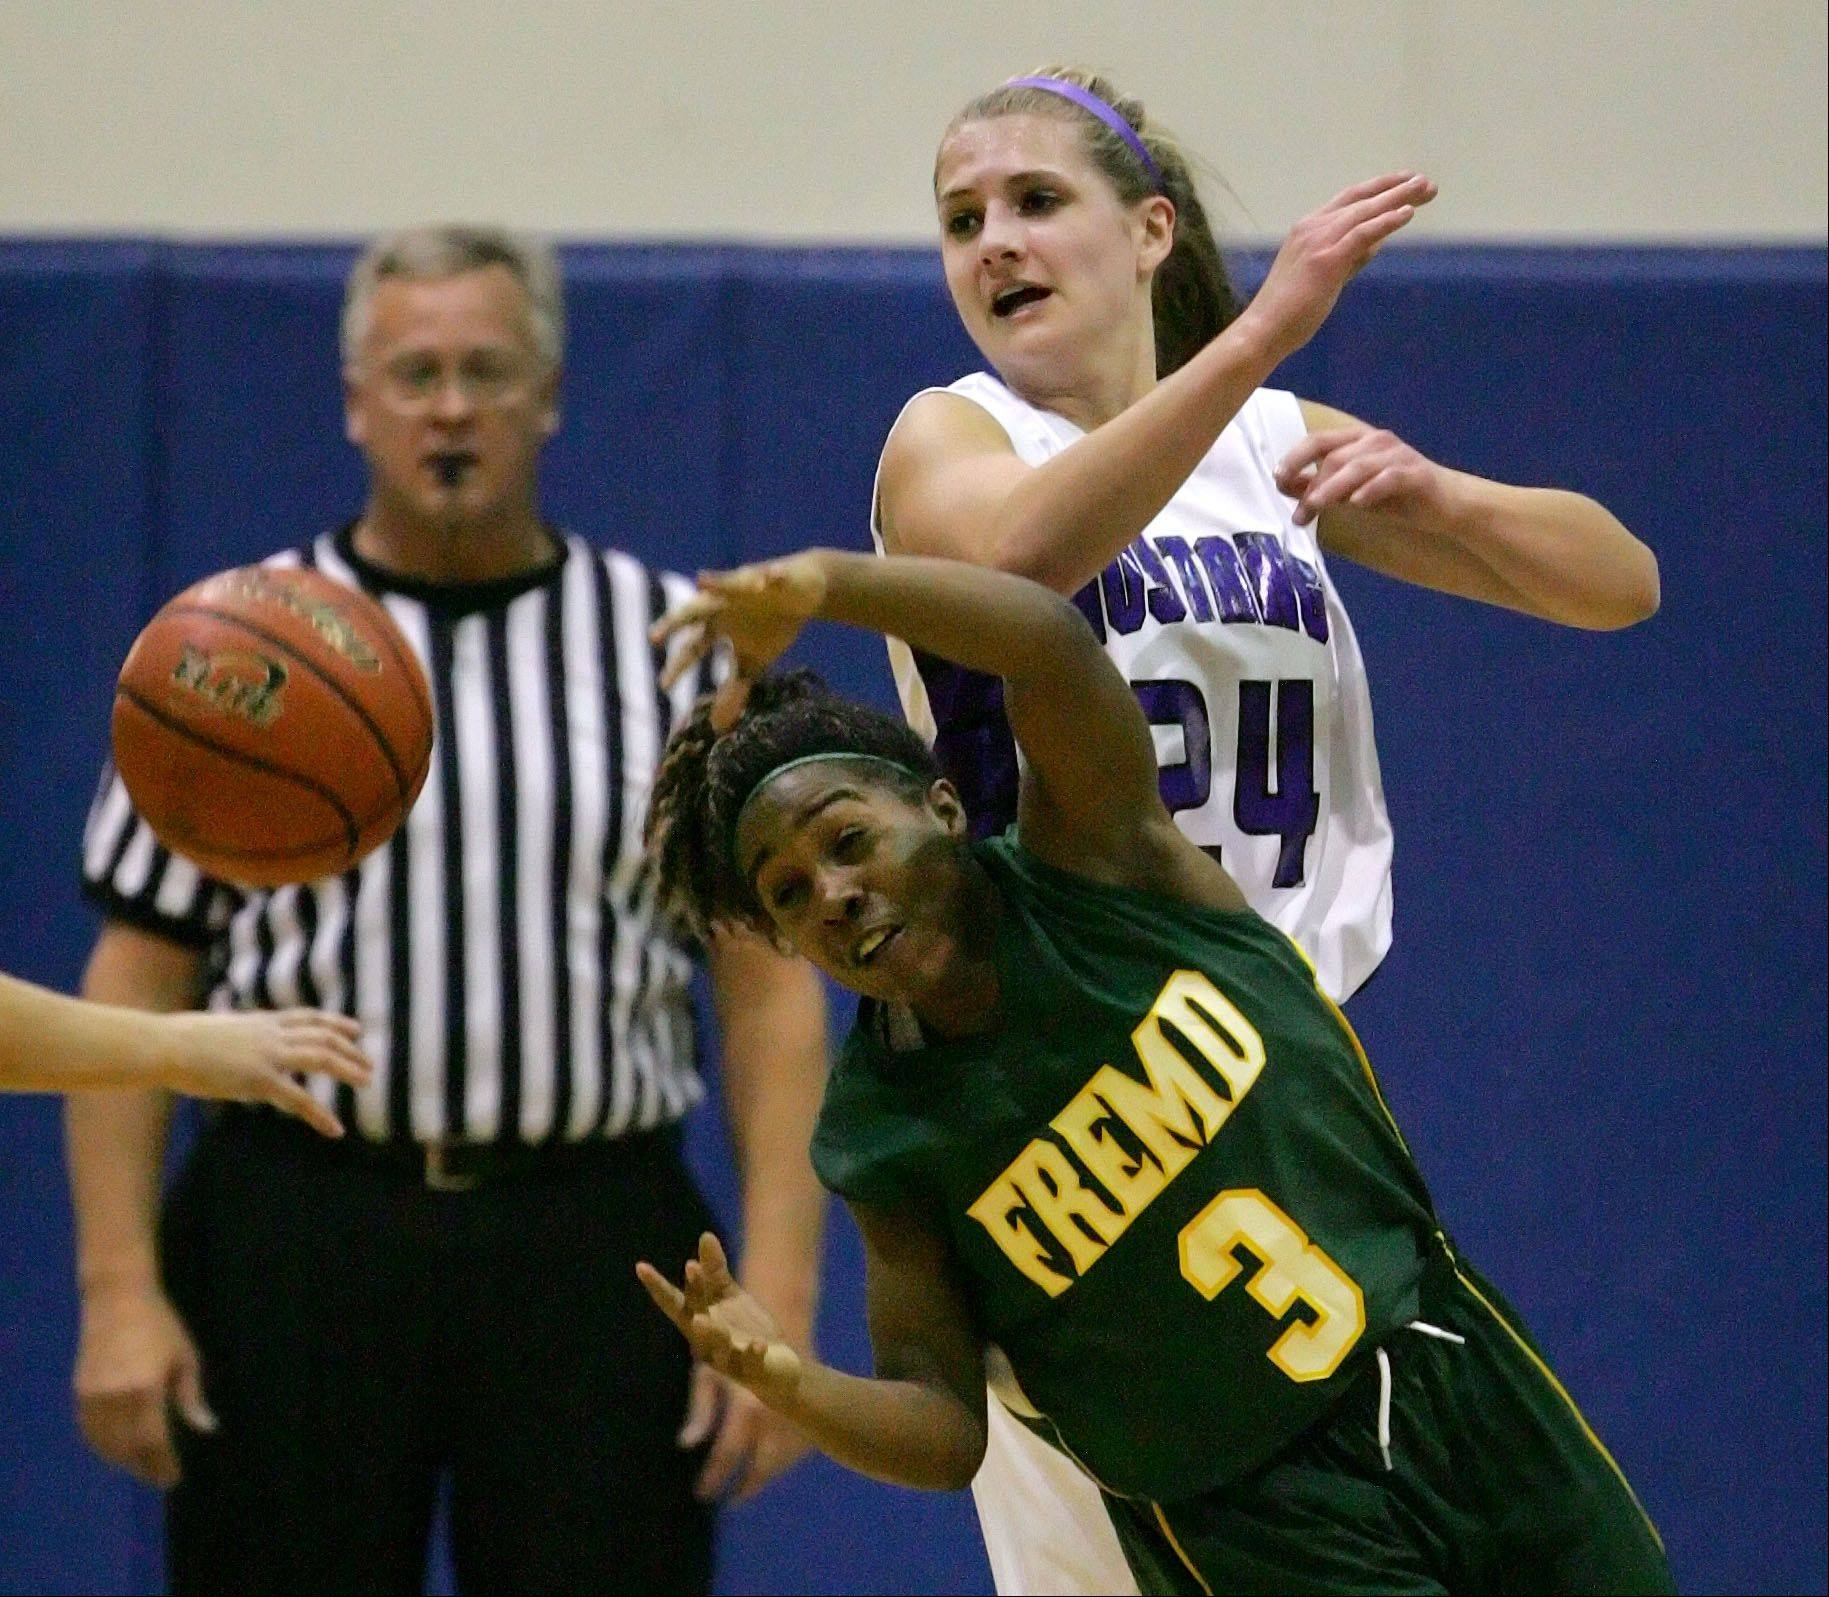 Rolling Meadows' Alexis Glasgow, right, and Fremd's Brianna Lewis chase a loose ball during their game Wednesday night at Lake Zurich High School.